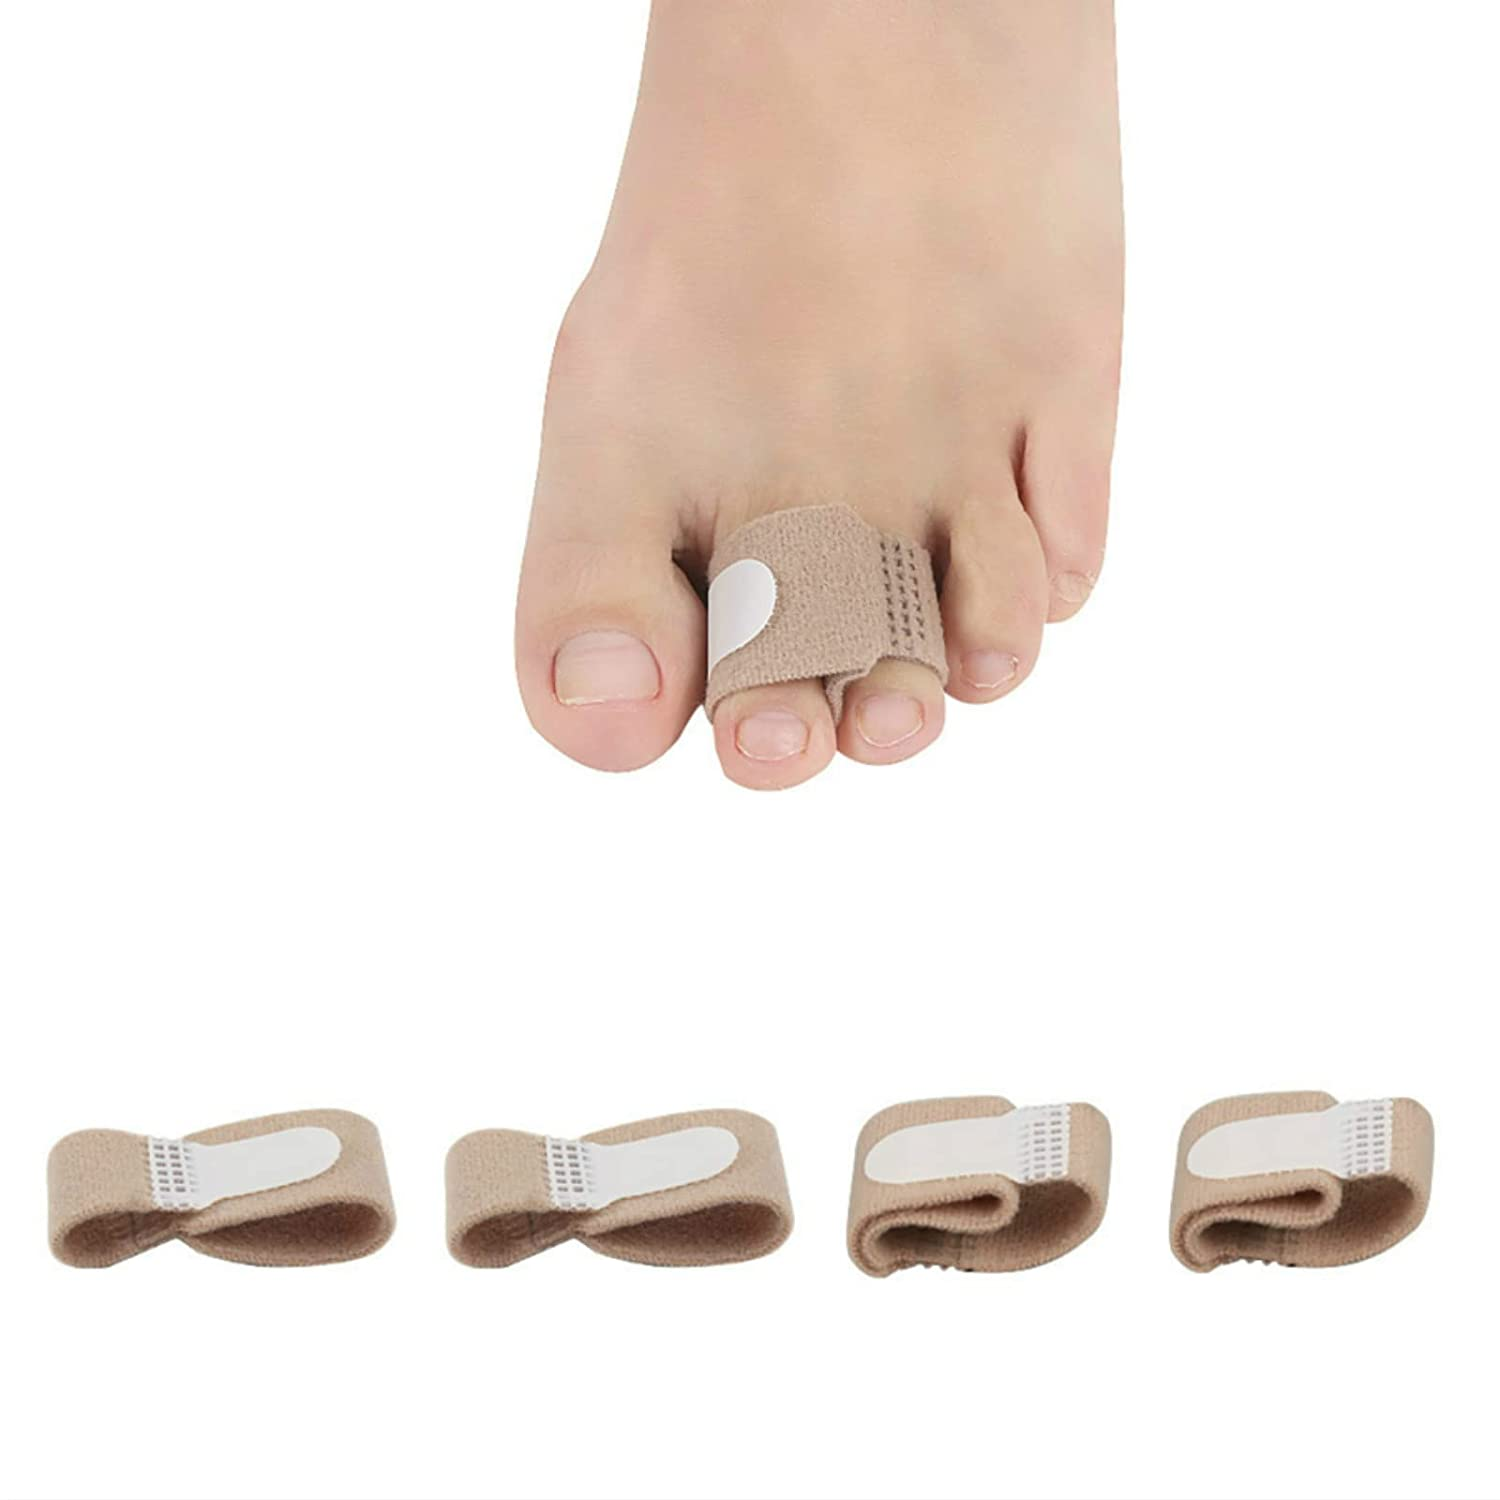 4 Pack Broken Toe Miami Mall Wraps Cushioned Separator Hammer Super Special SALE held Bandages